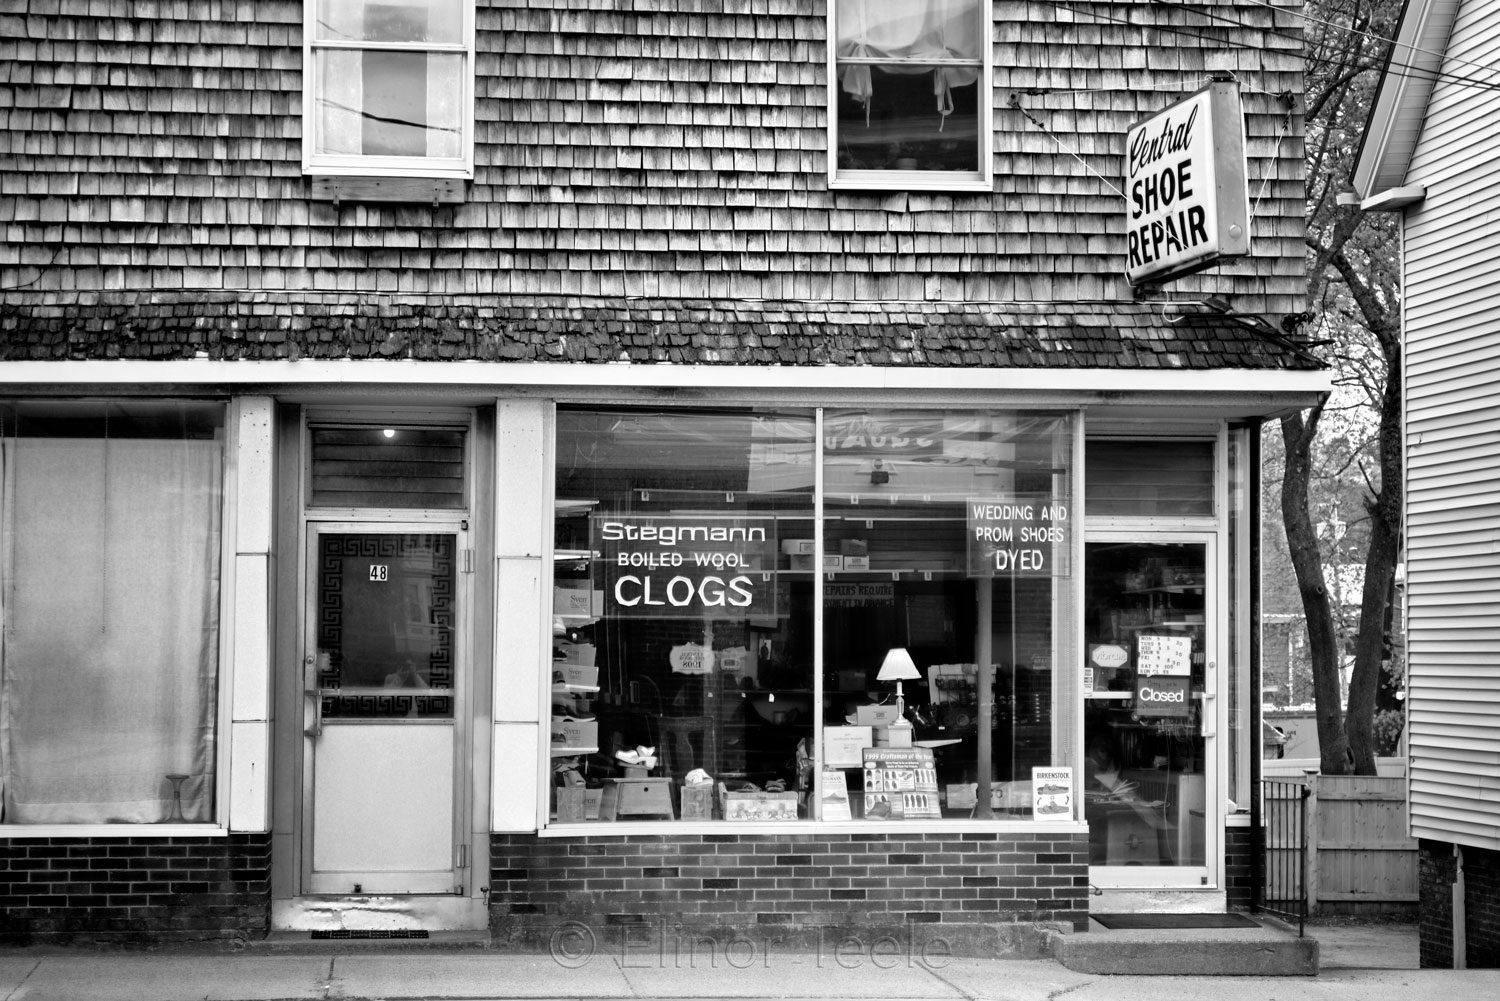 Central Shoe Repair, Ipswich MA